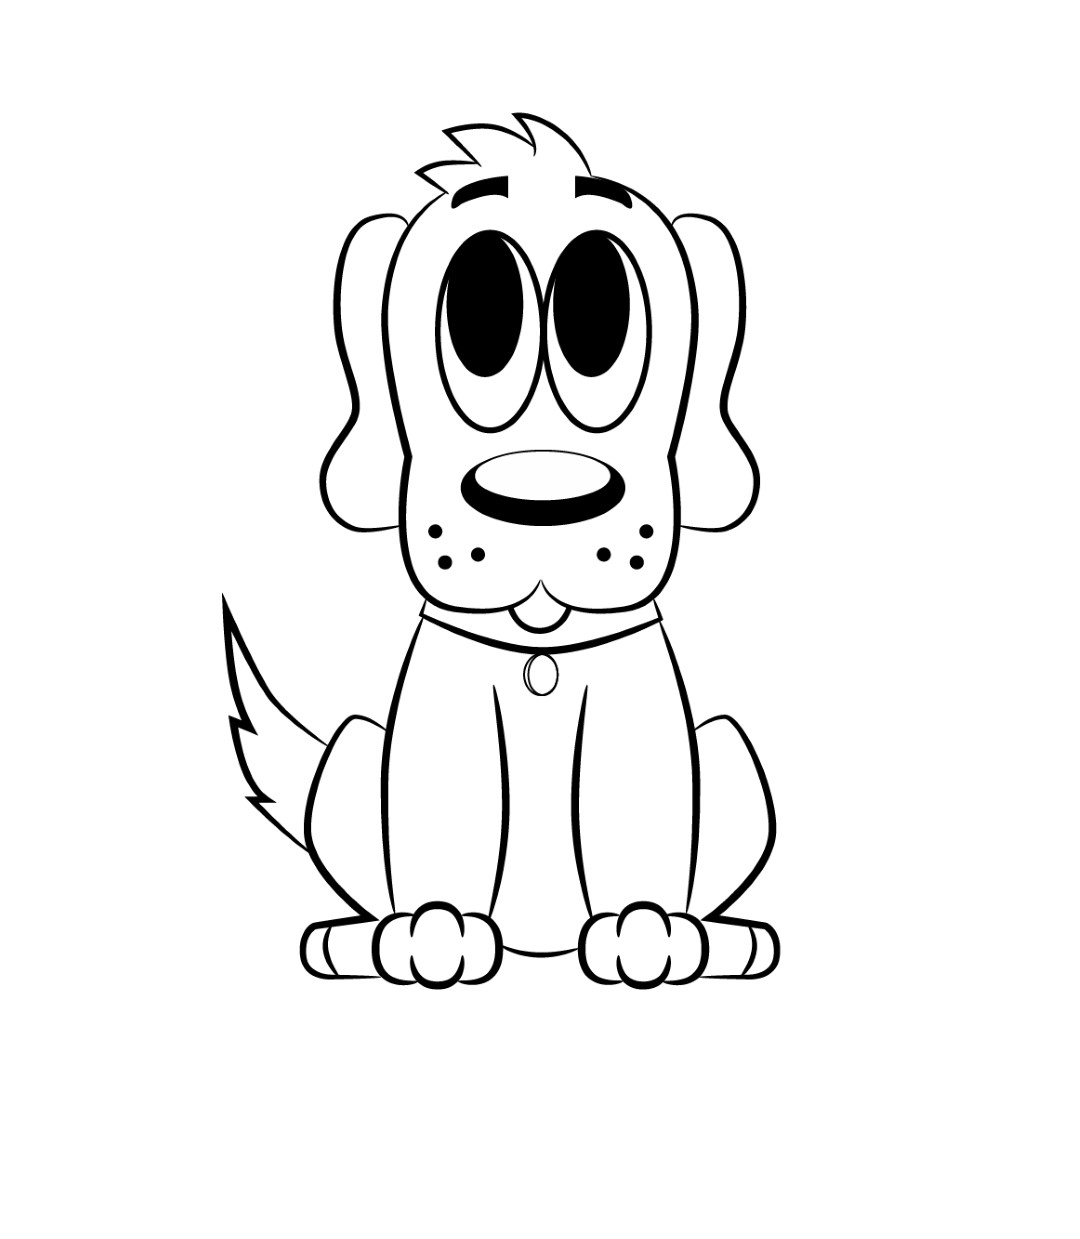 1080x1239 How To Draw A Cartoon Dog And Tutorials